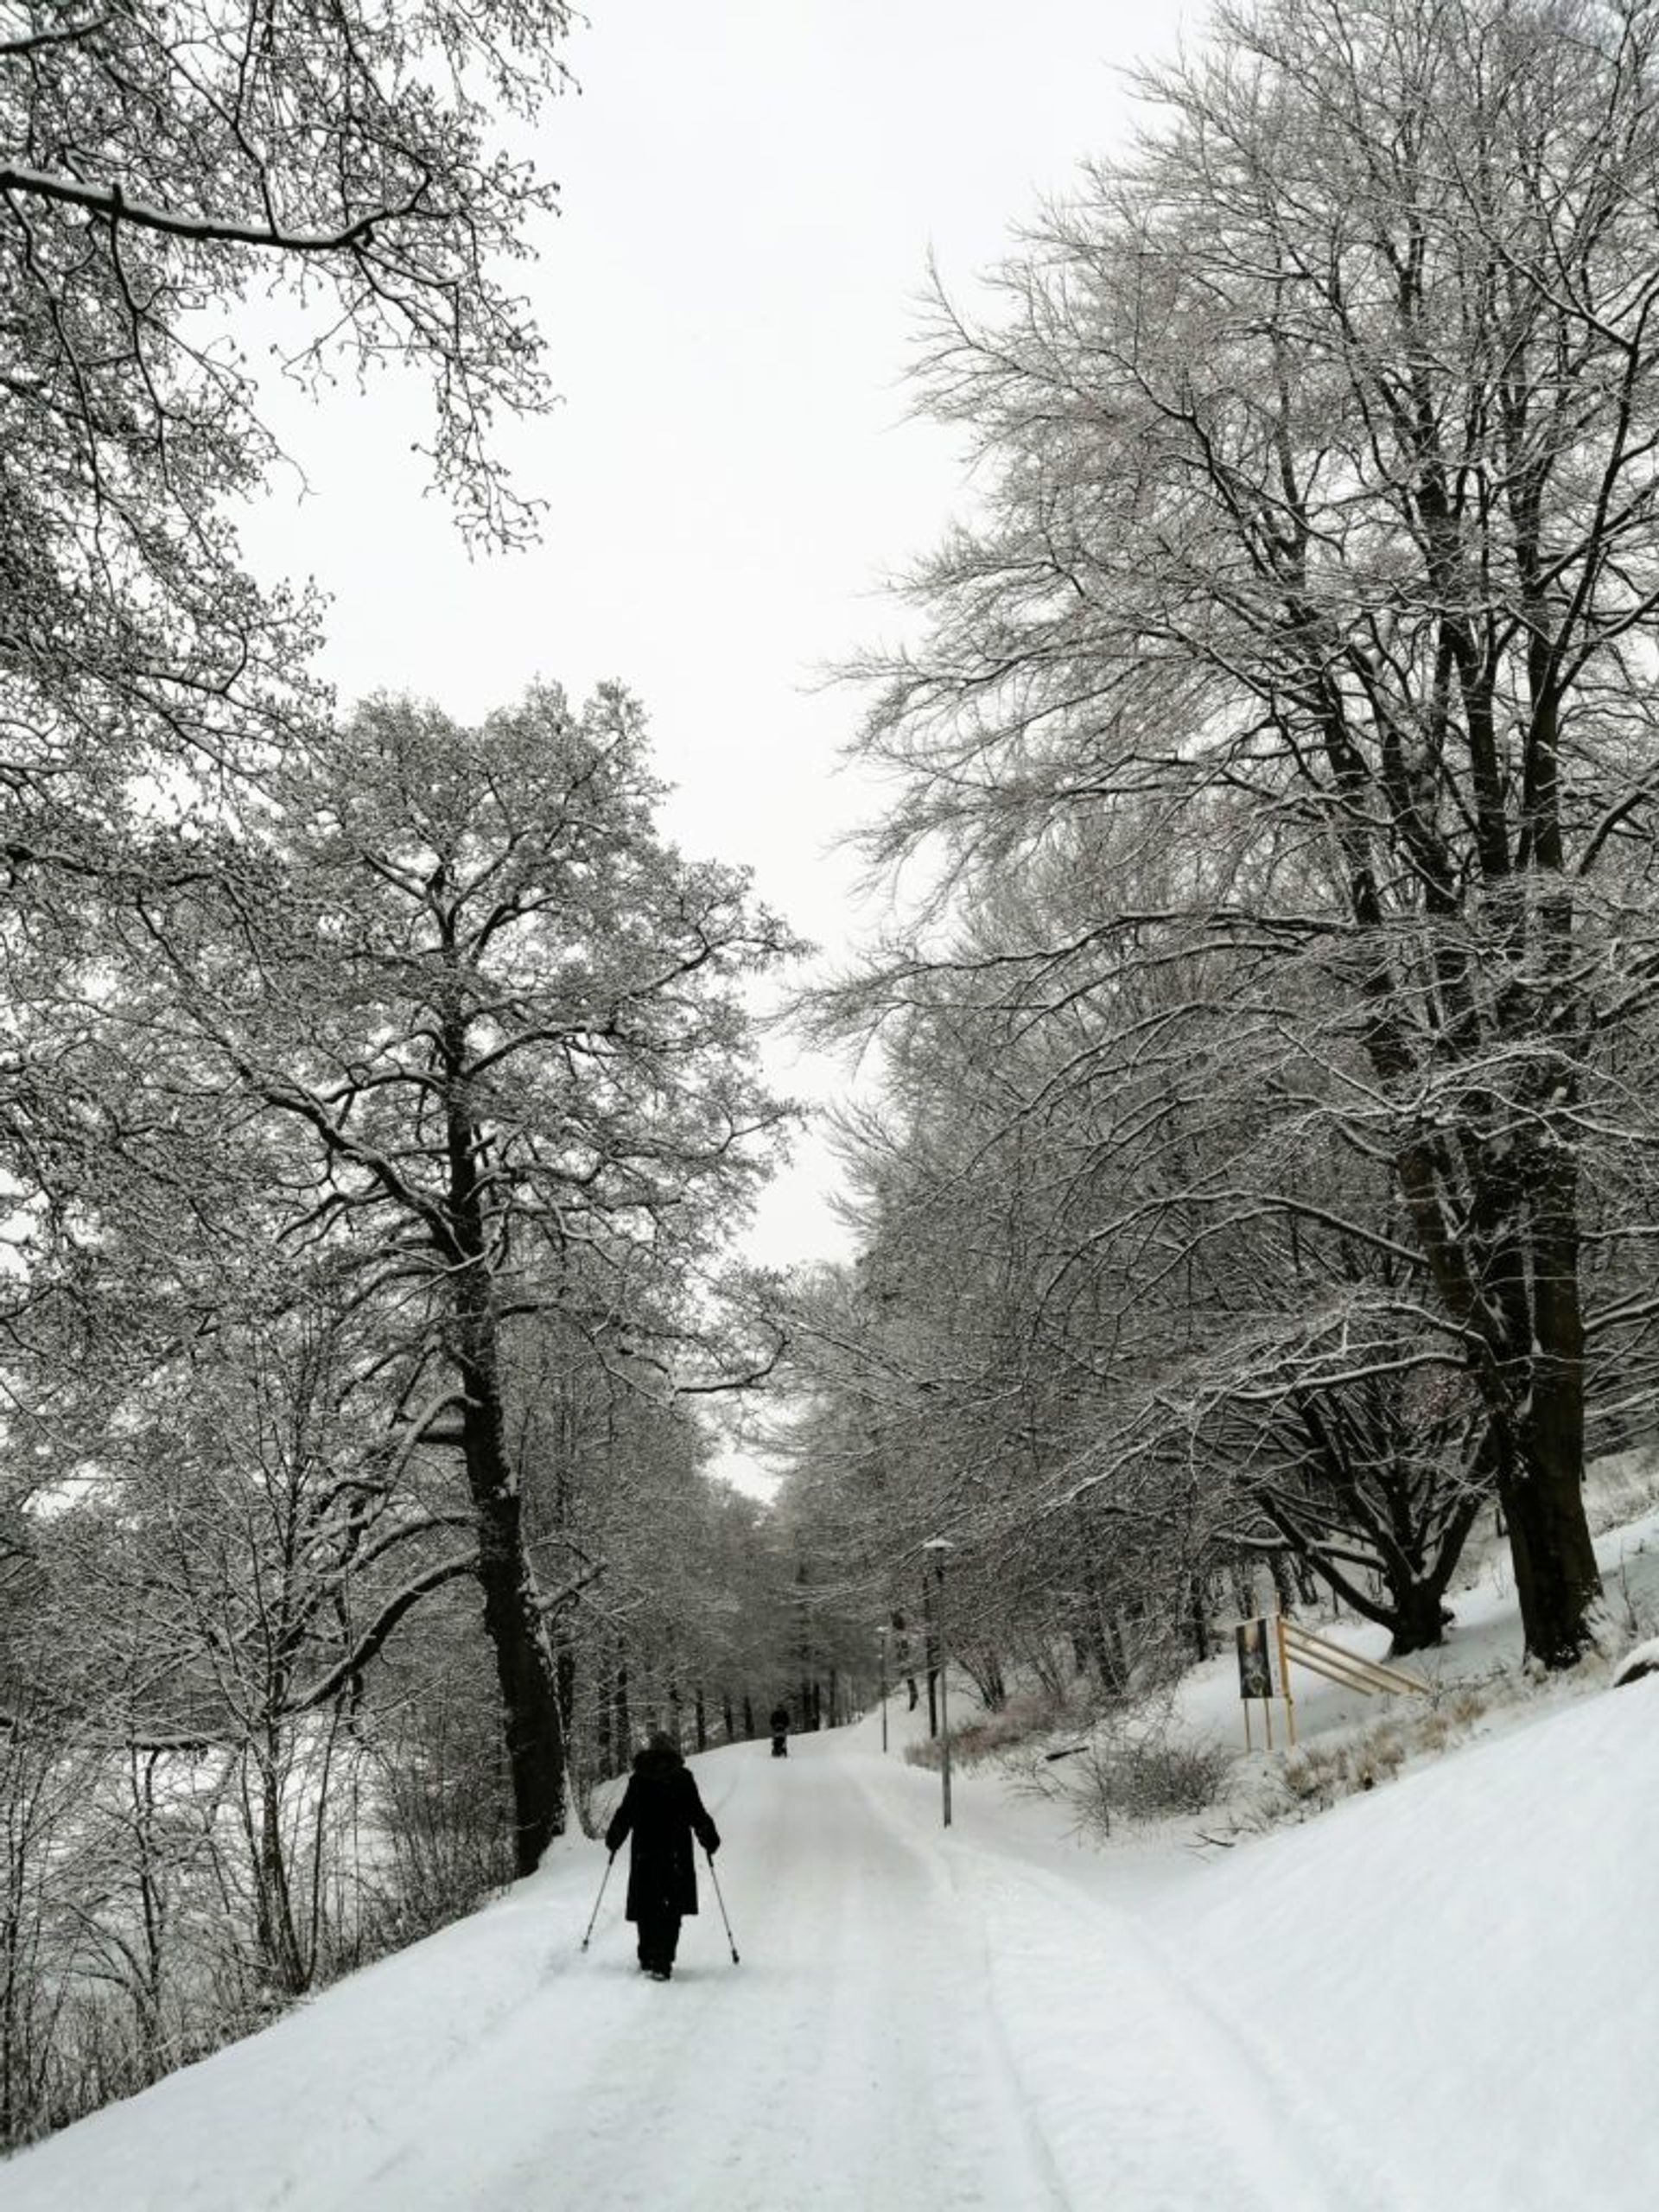 Snowed-over forest path, tall black trees covered with snow and a person in the foreground walking on the path, wearing black winter clothes